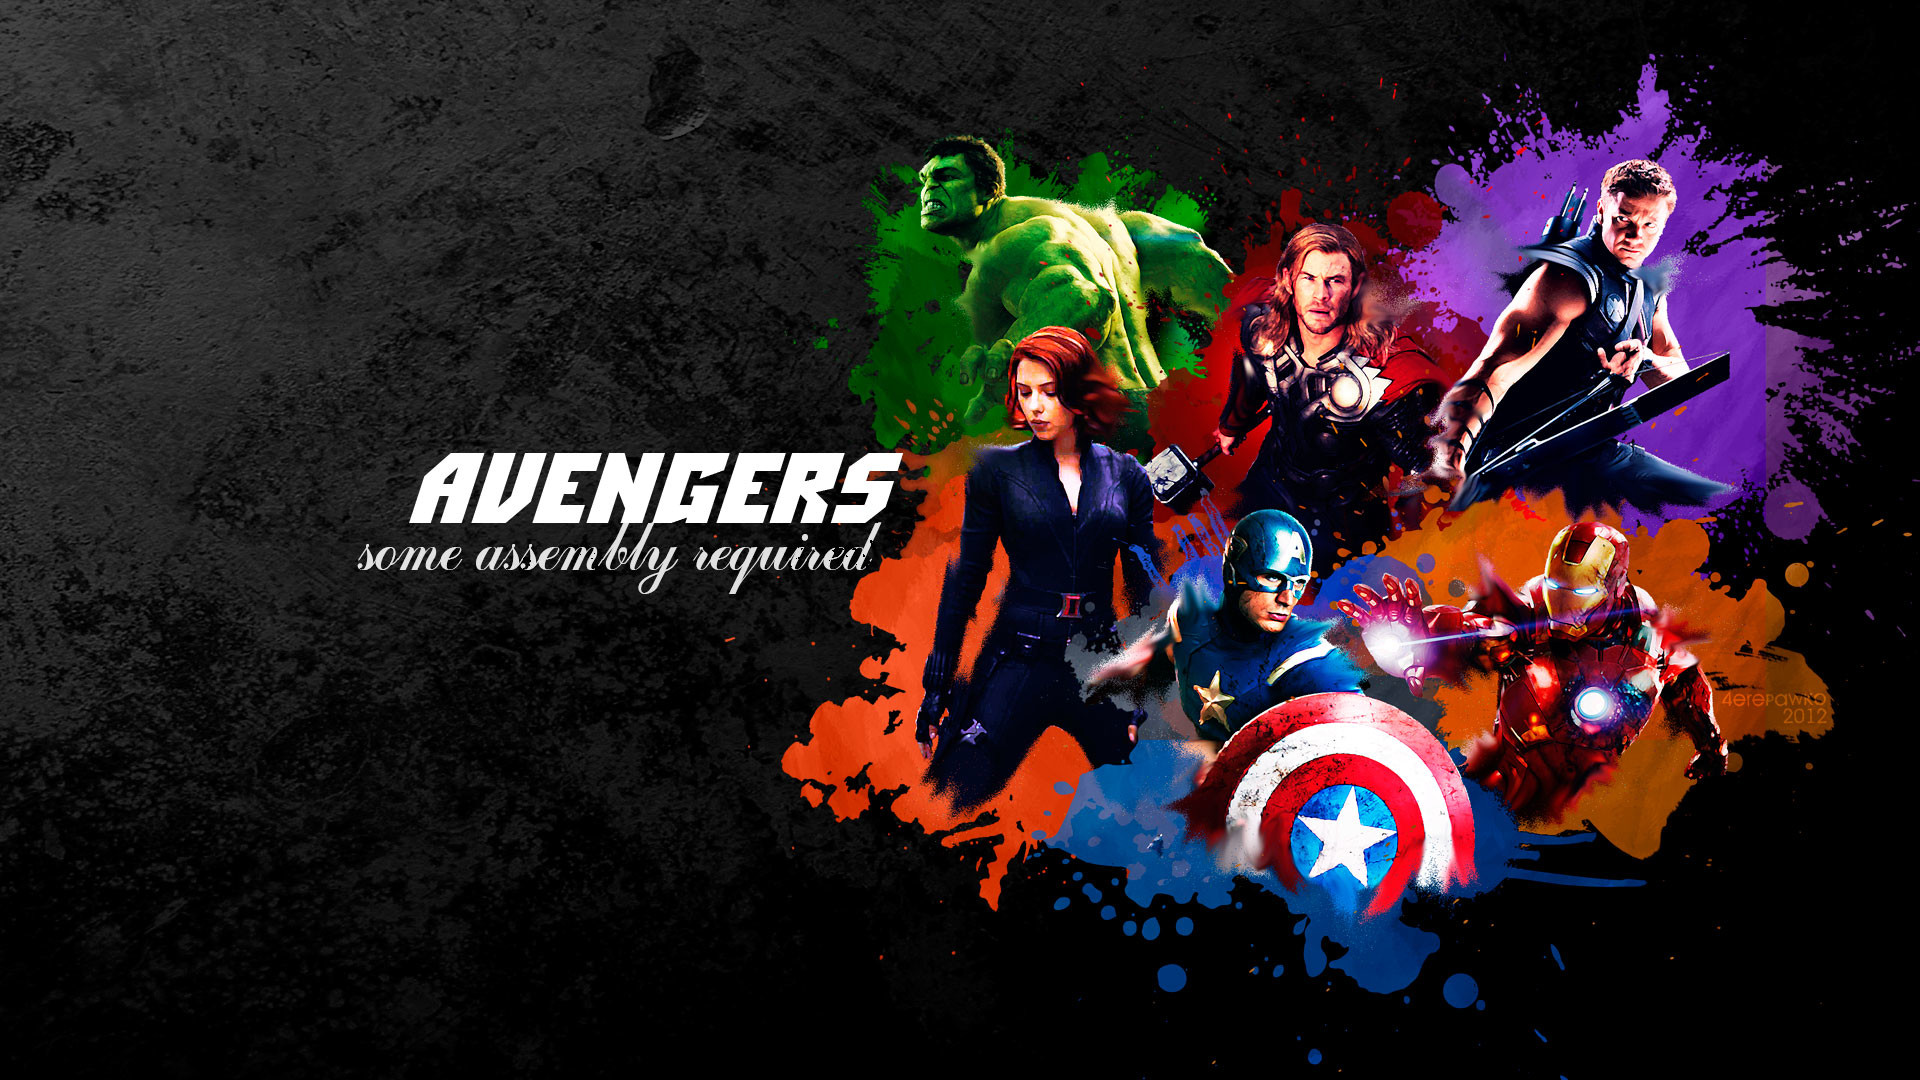 … Download HD Wallpapers Of Avengers Group (9)